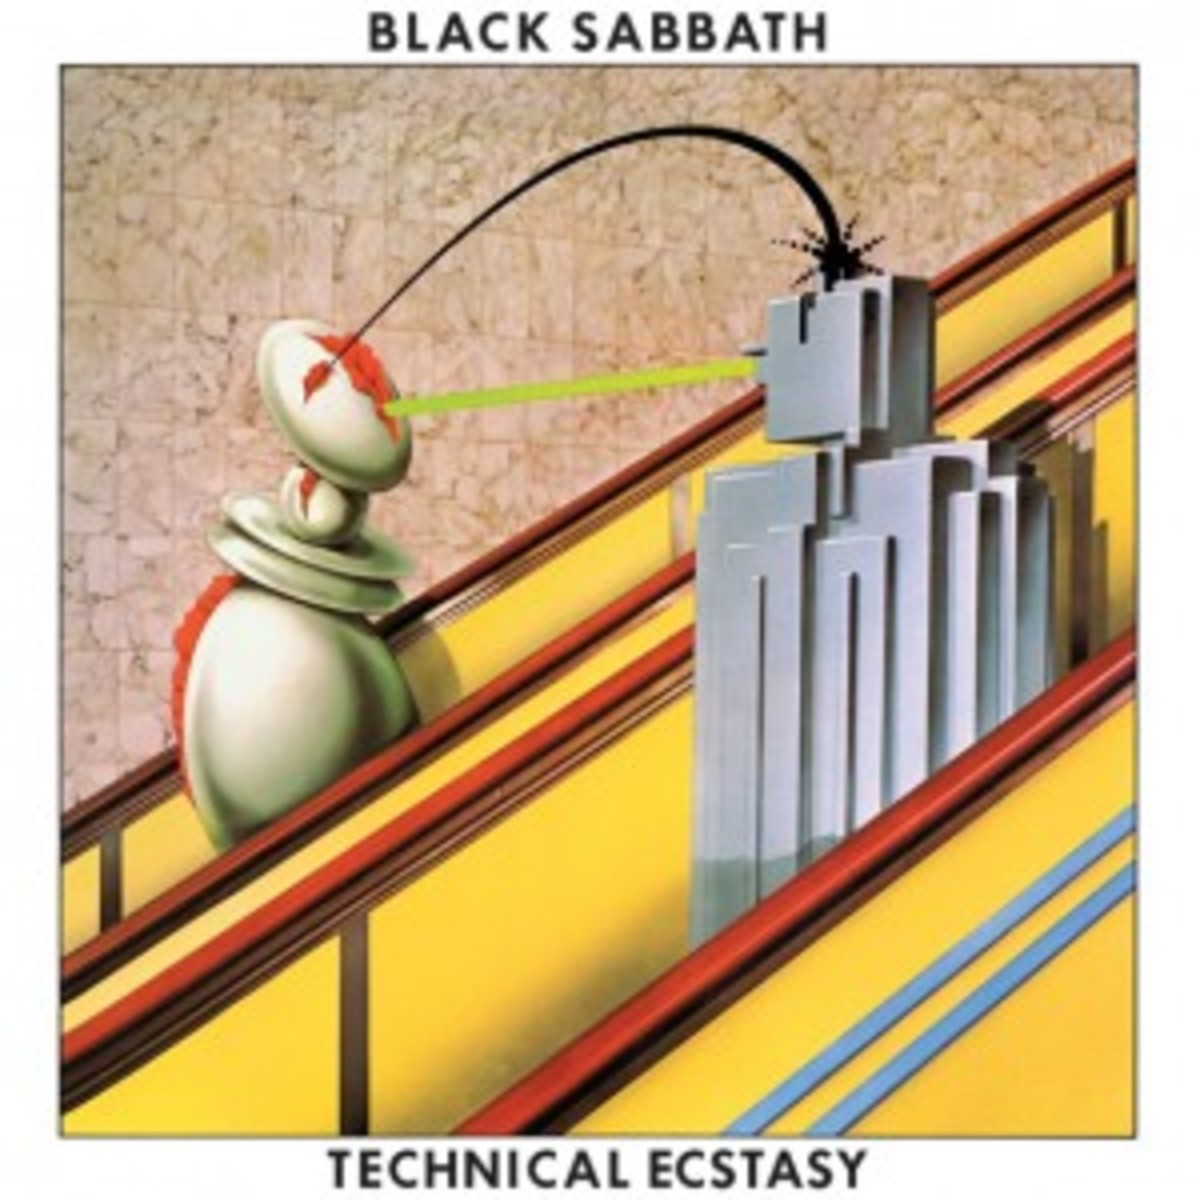 Black Sabbath Technical Ecstasy 2013 vinyl LP